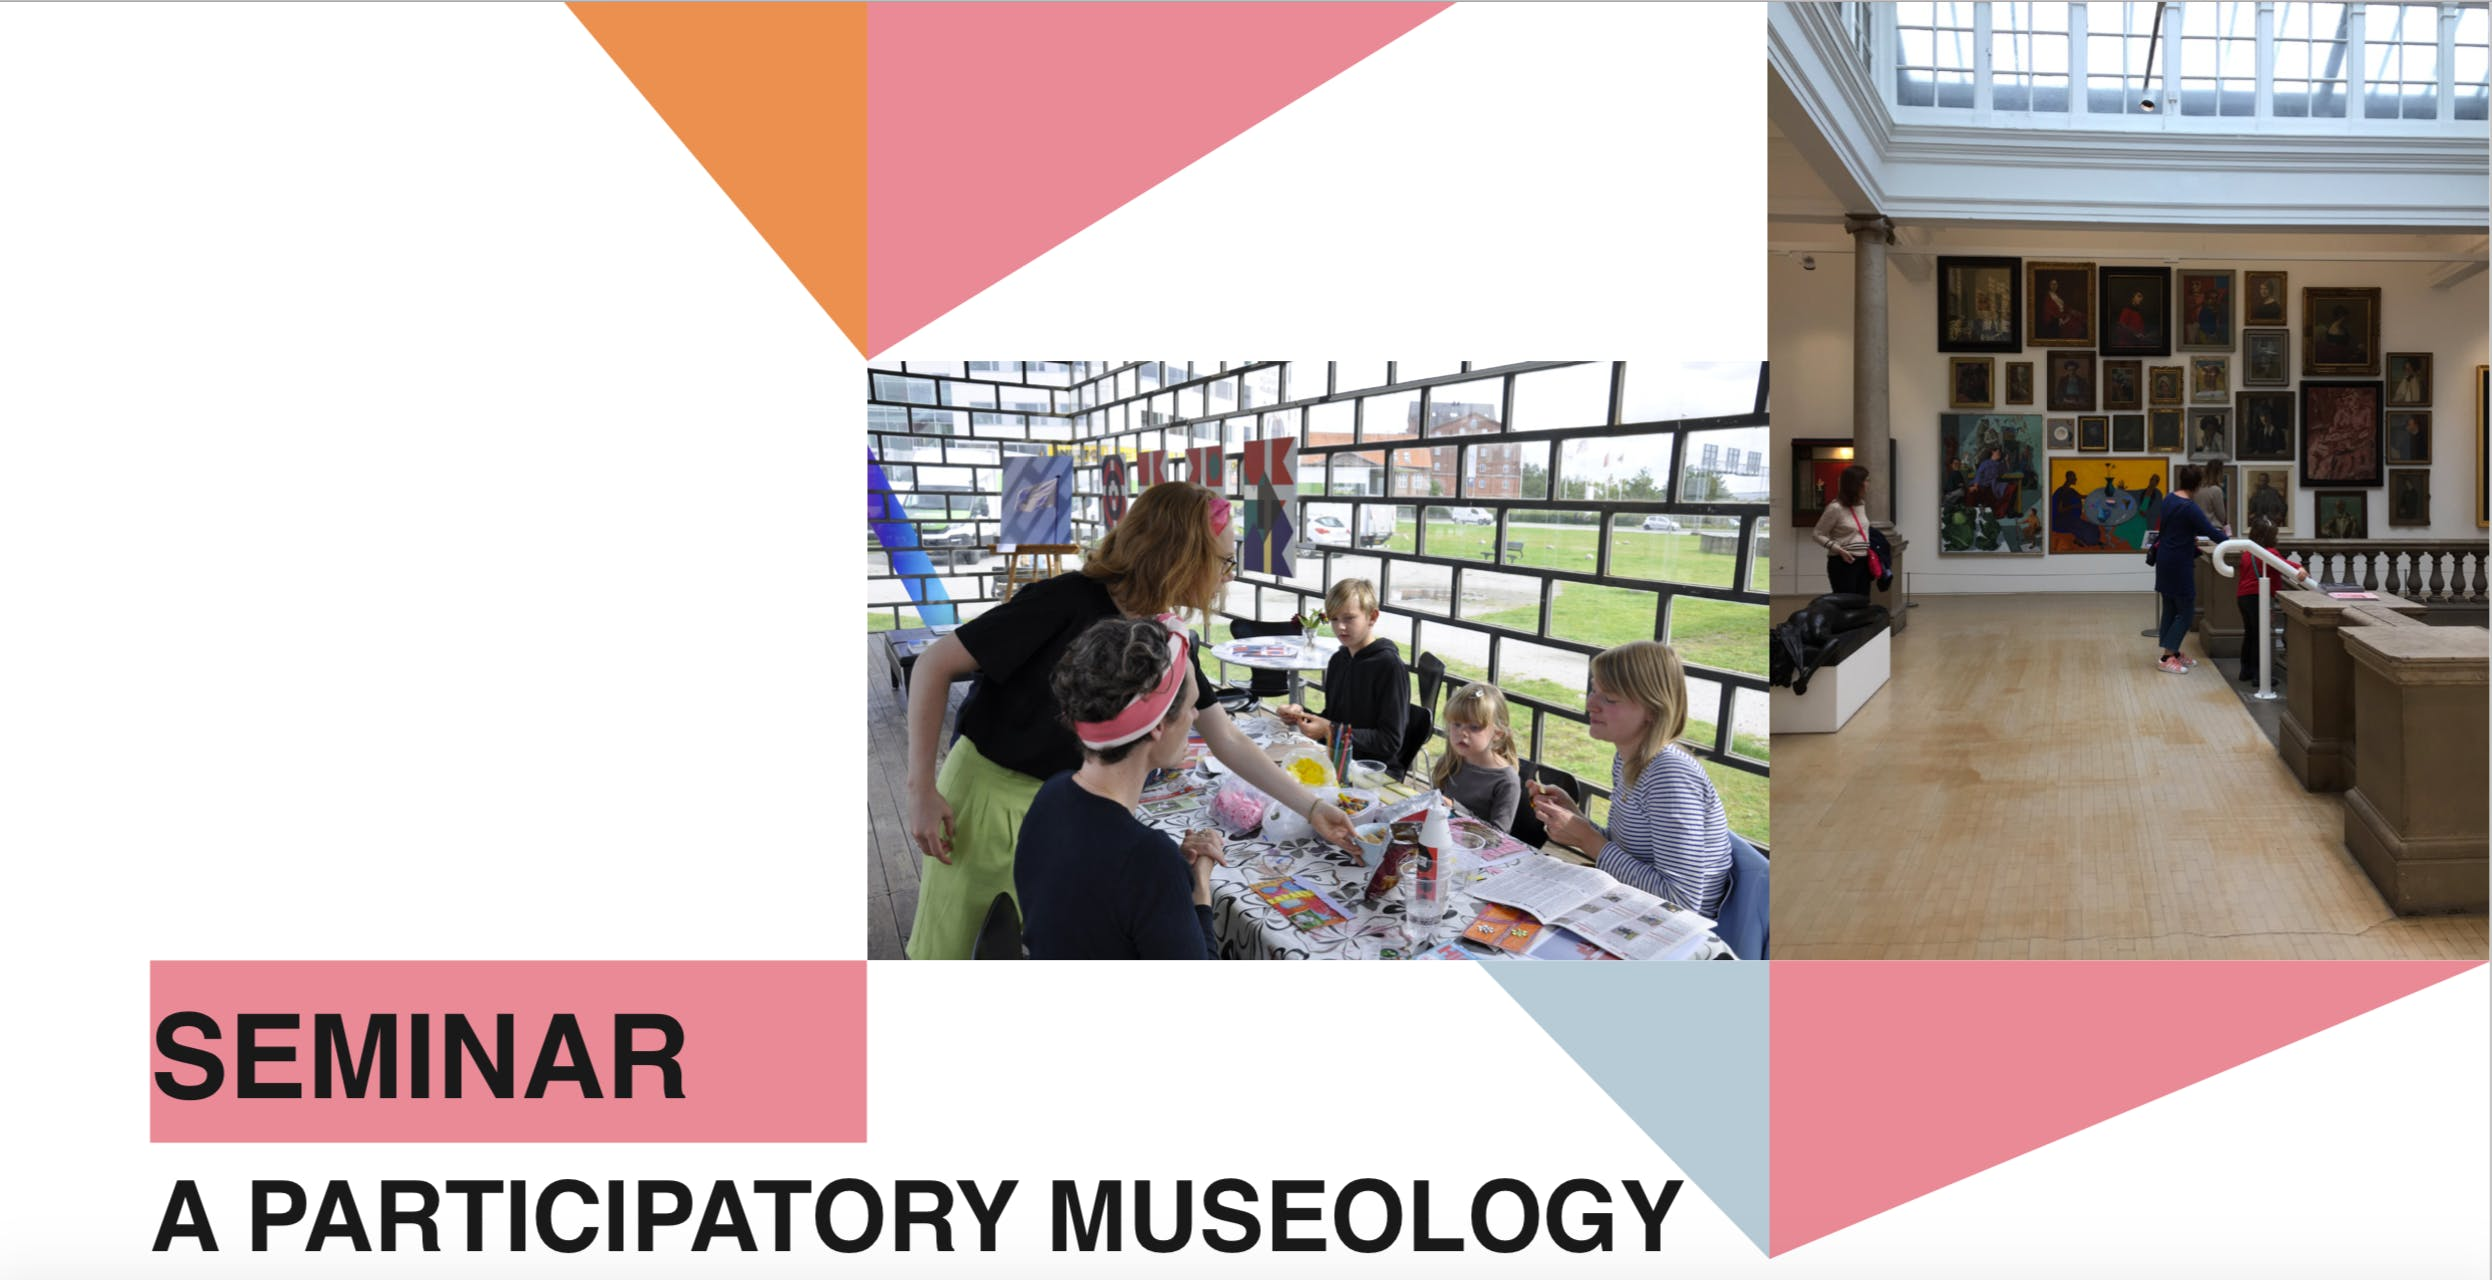 A participatory museology